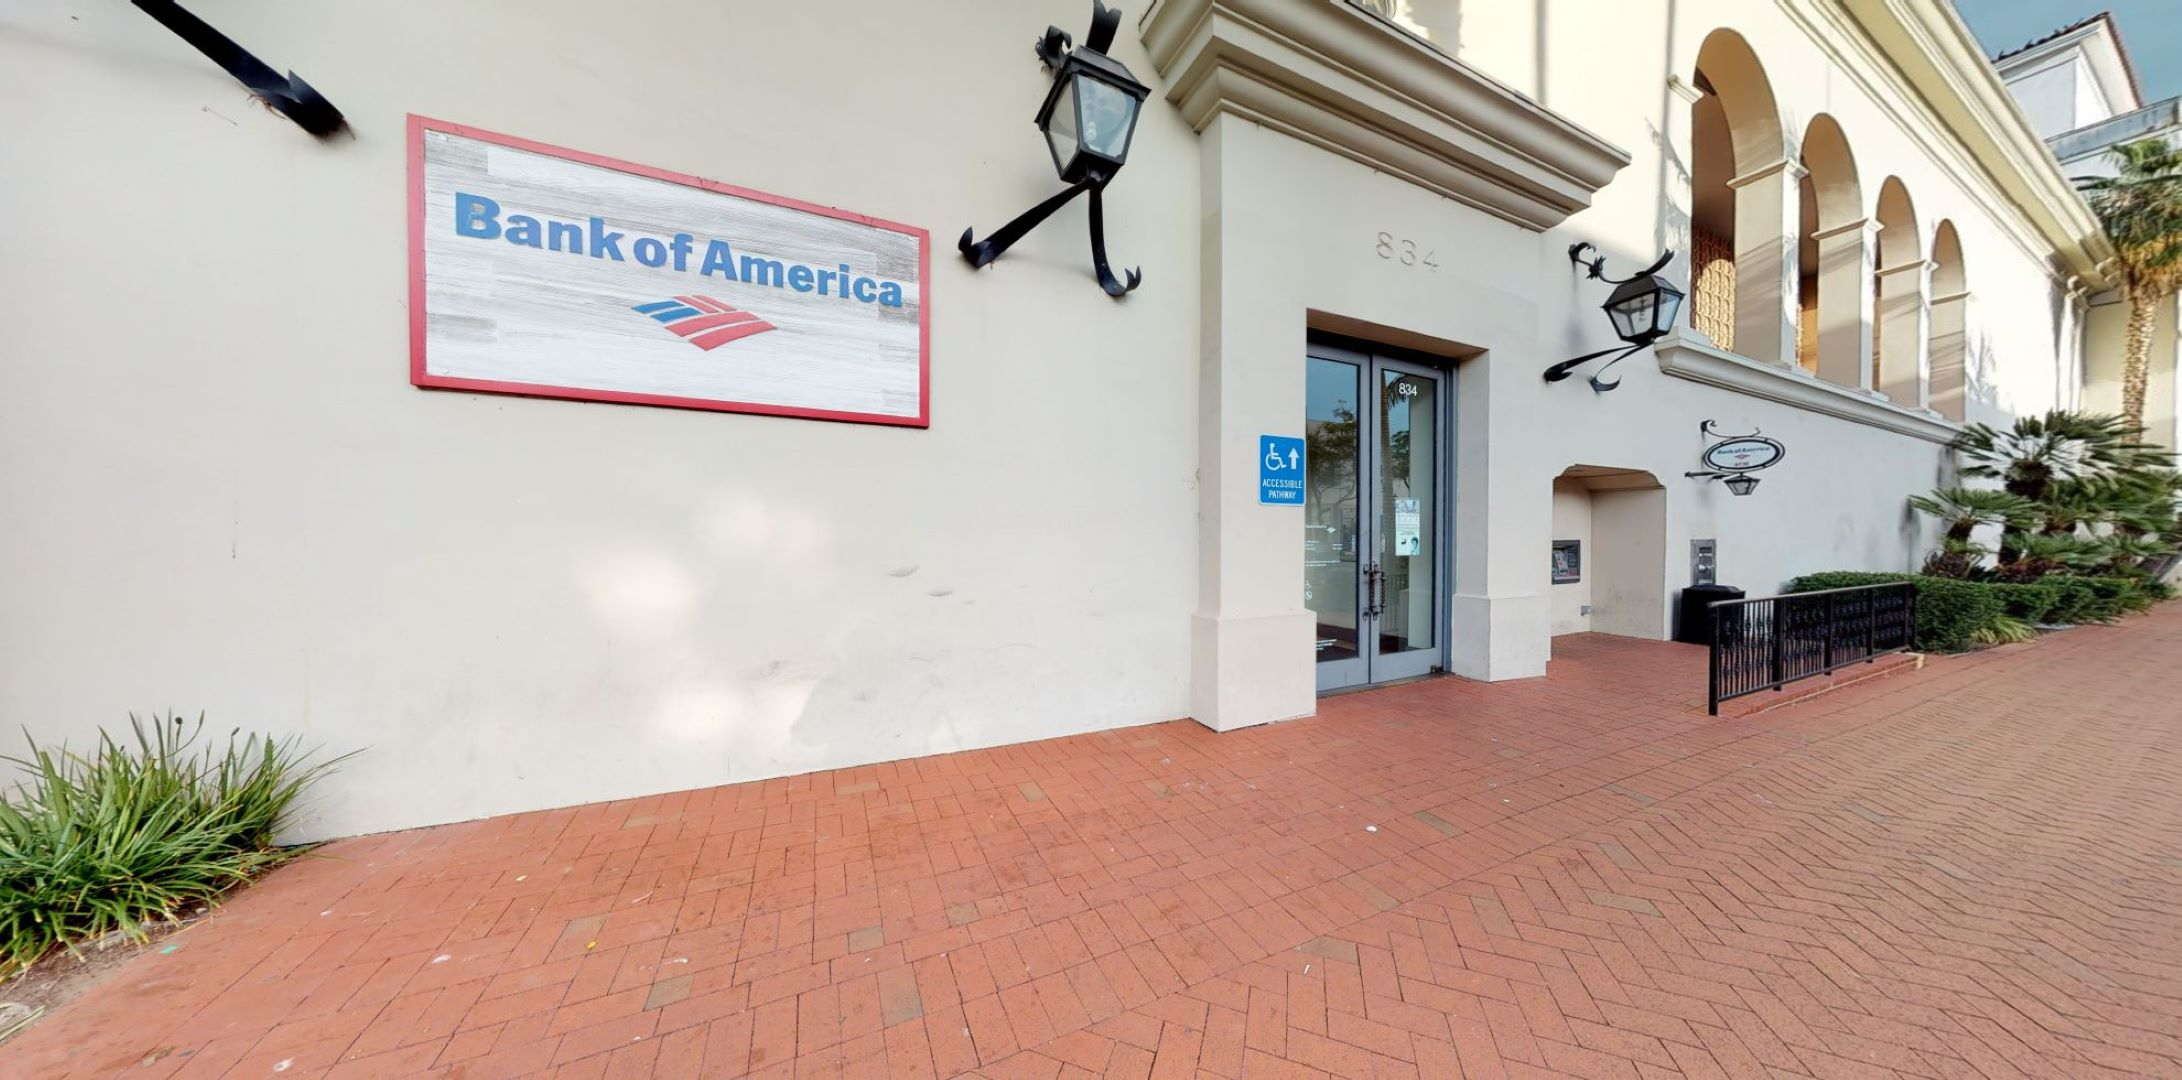 Bank of America financial center with walk-up ATM   834 State St, Santa Barbara, CA 93101